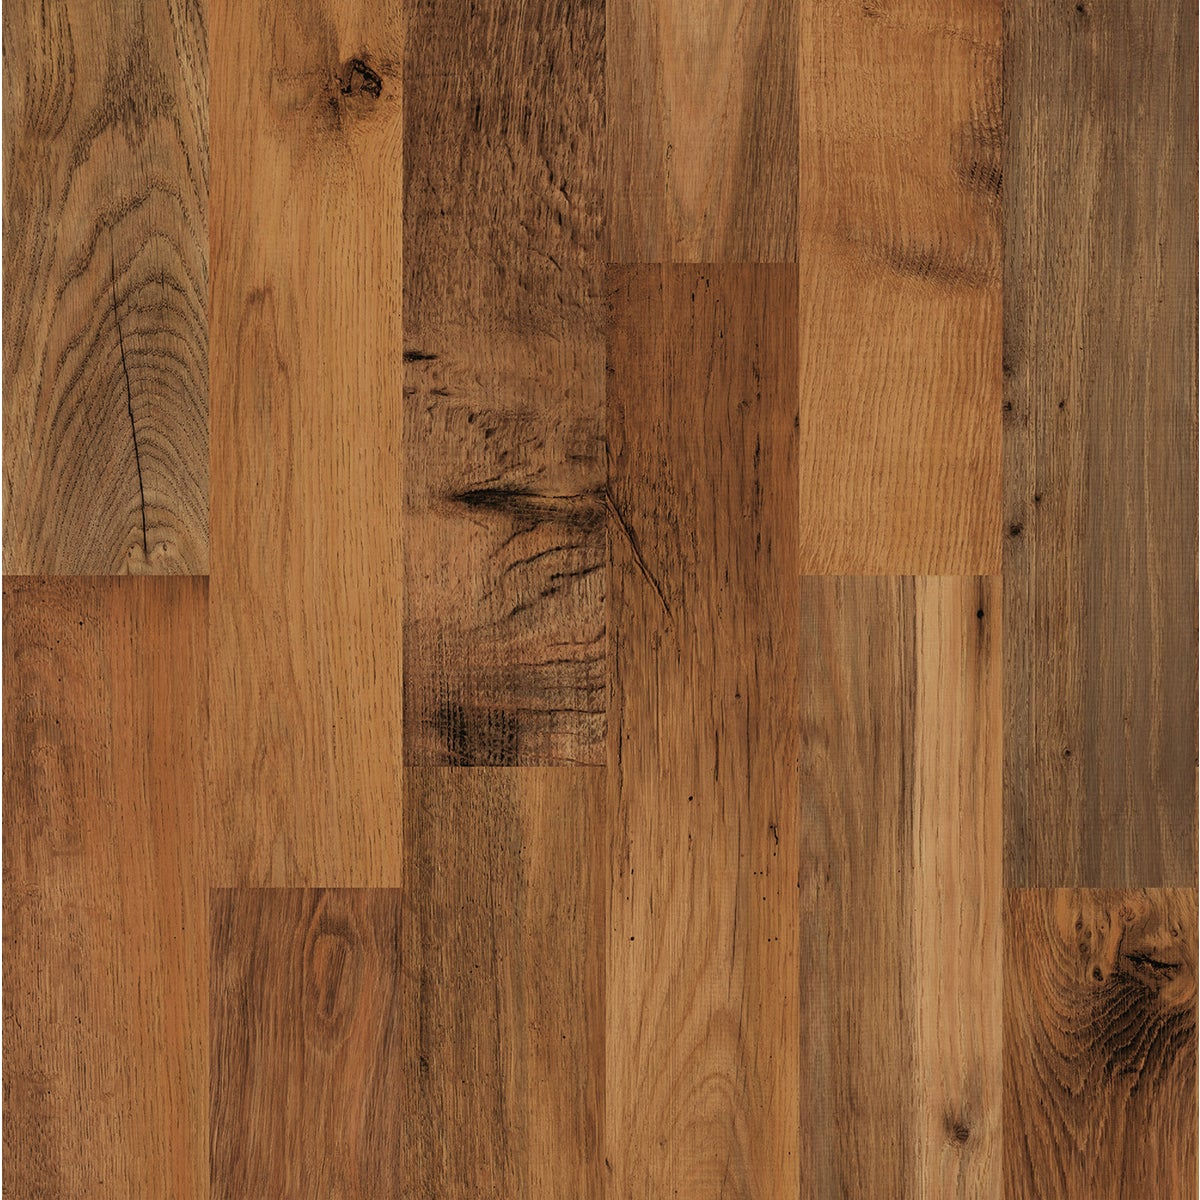 AVIGNON OAK RS LAM FLOOR